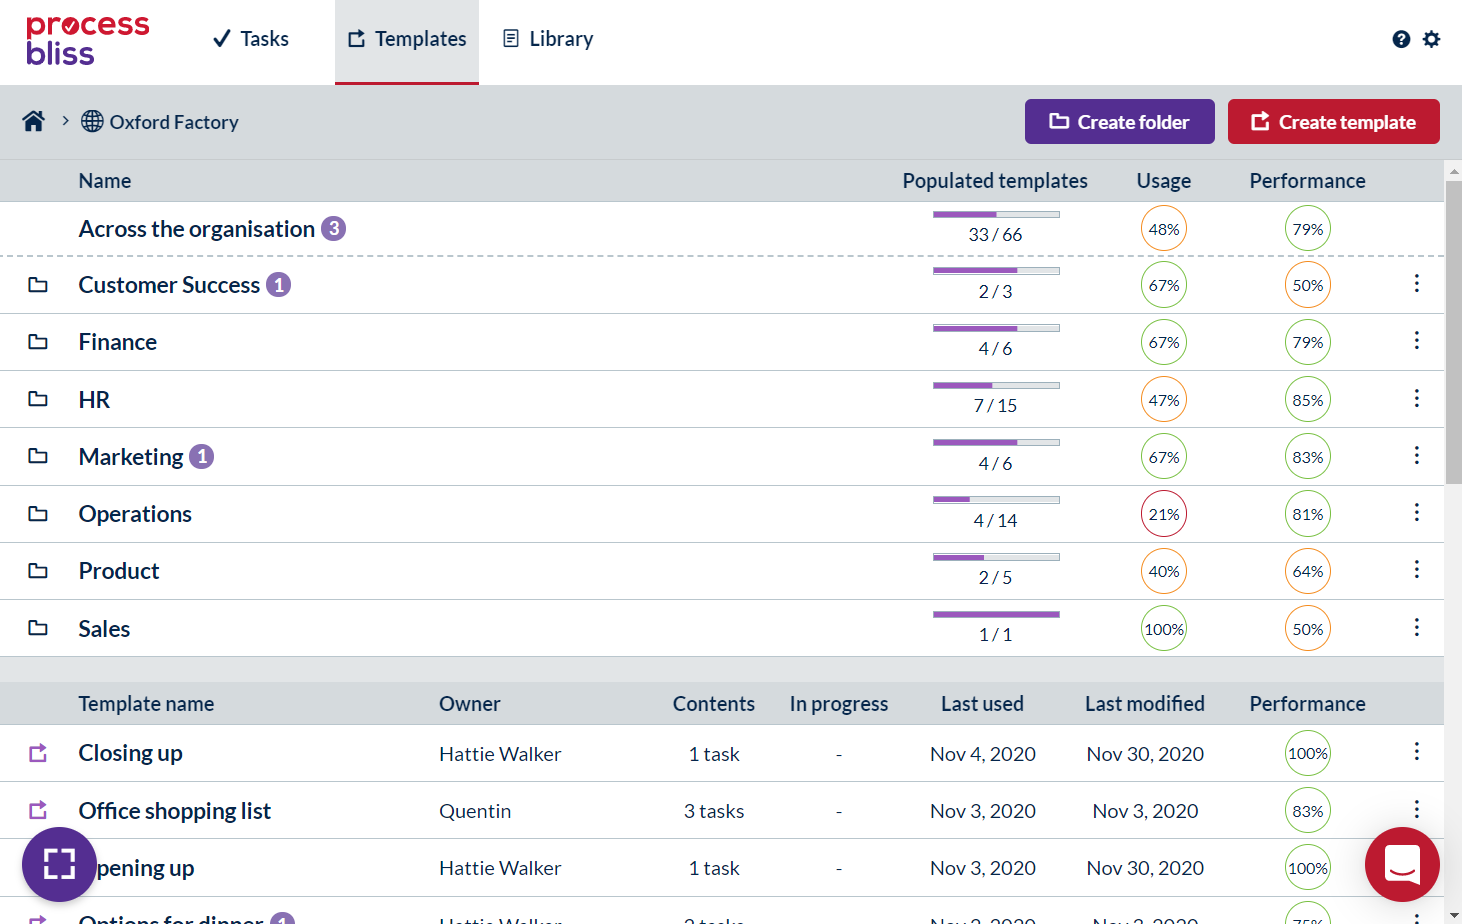 A screenshot showing the Templates tab in Process Bliss and the analytics for the folders and templates